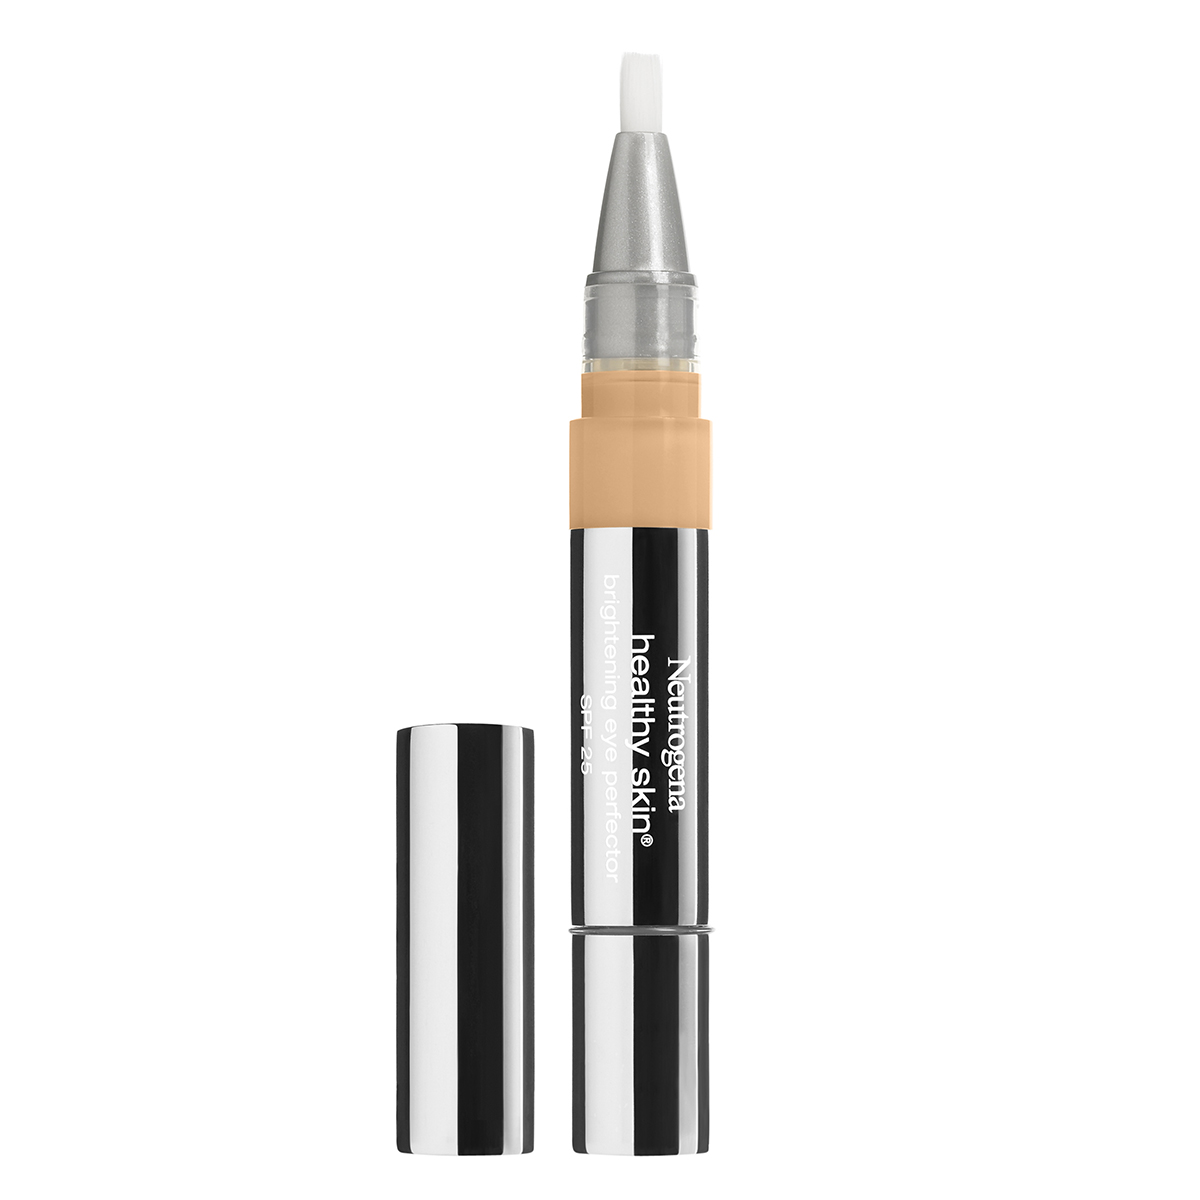 Neutrogena skin brightening eye concealer